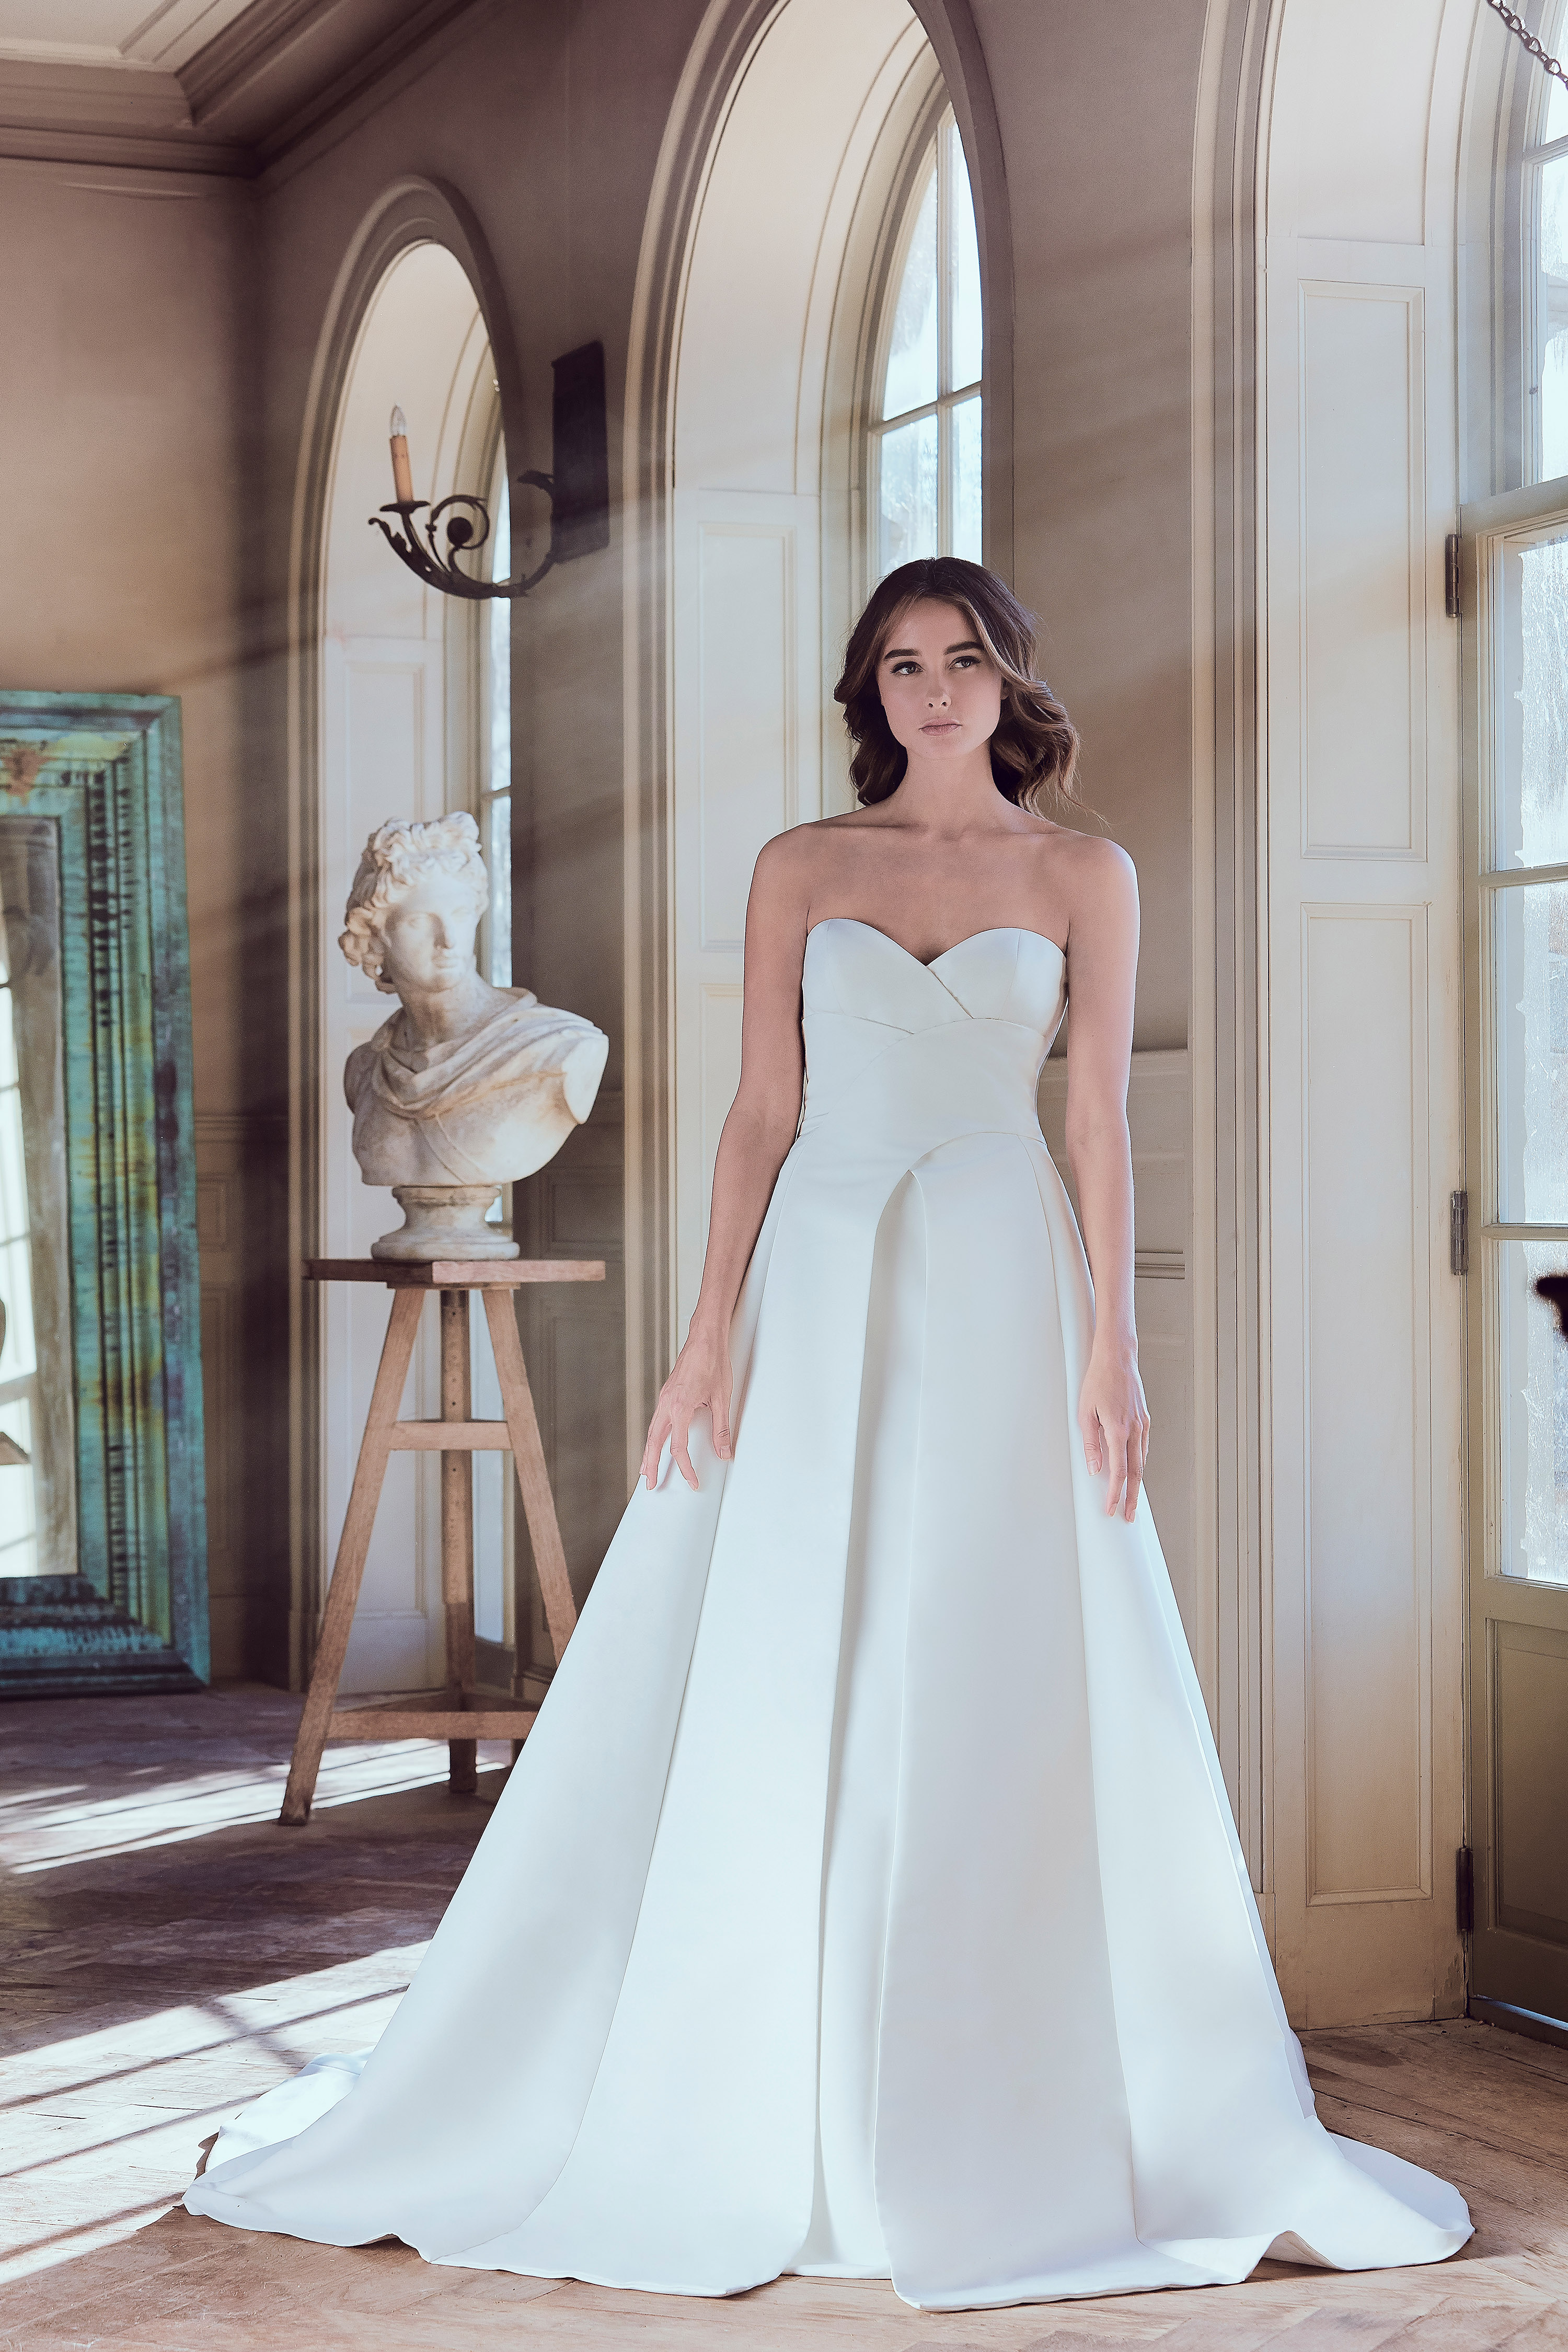 sareh nouri wedding dress spring 2019 sweatheart a-line pleats